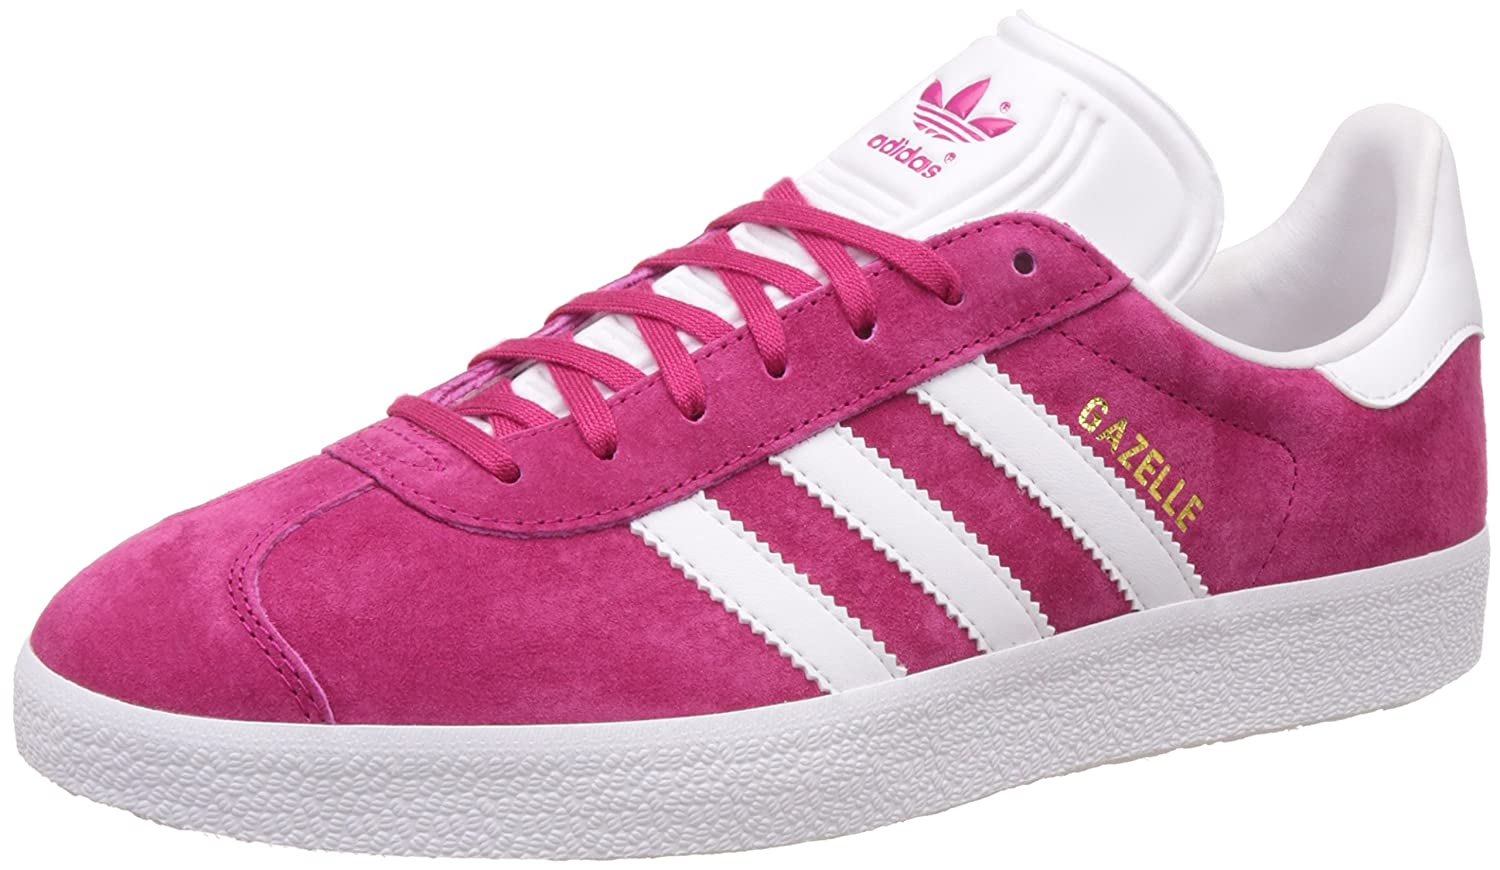 adidas Men's Gazelle Casual Sneakers B01IP4DKOK 8.5 D(M) US|Pink White